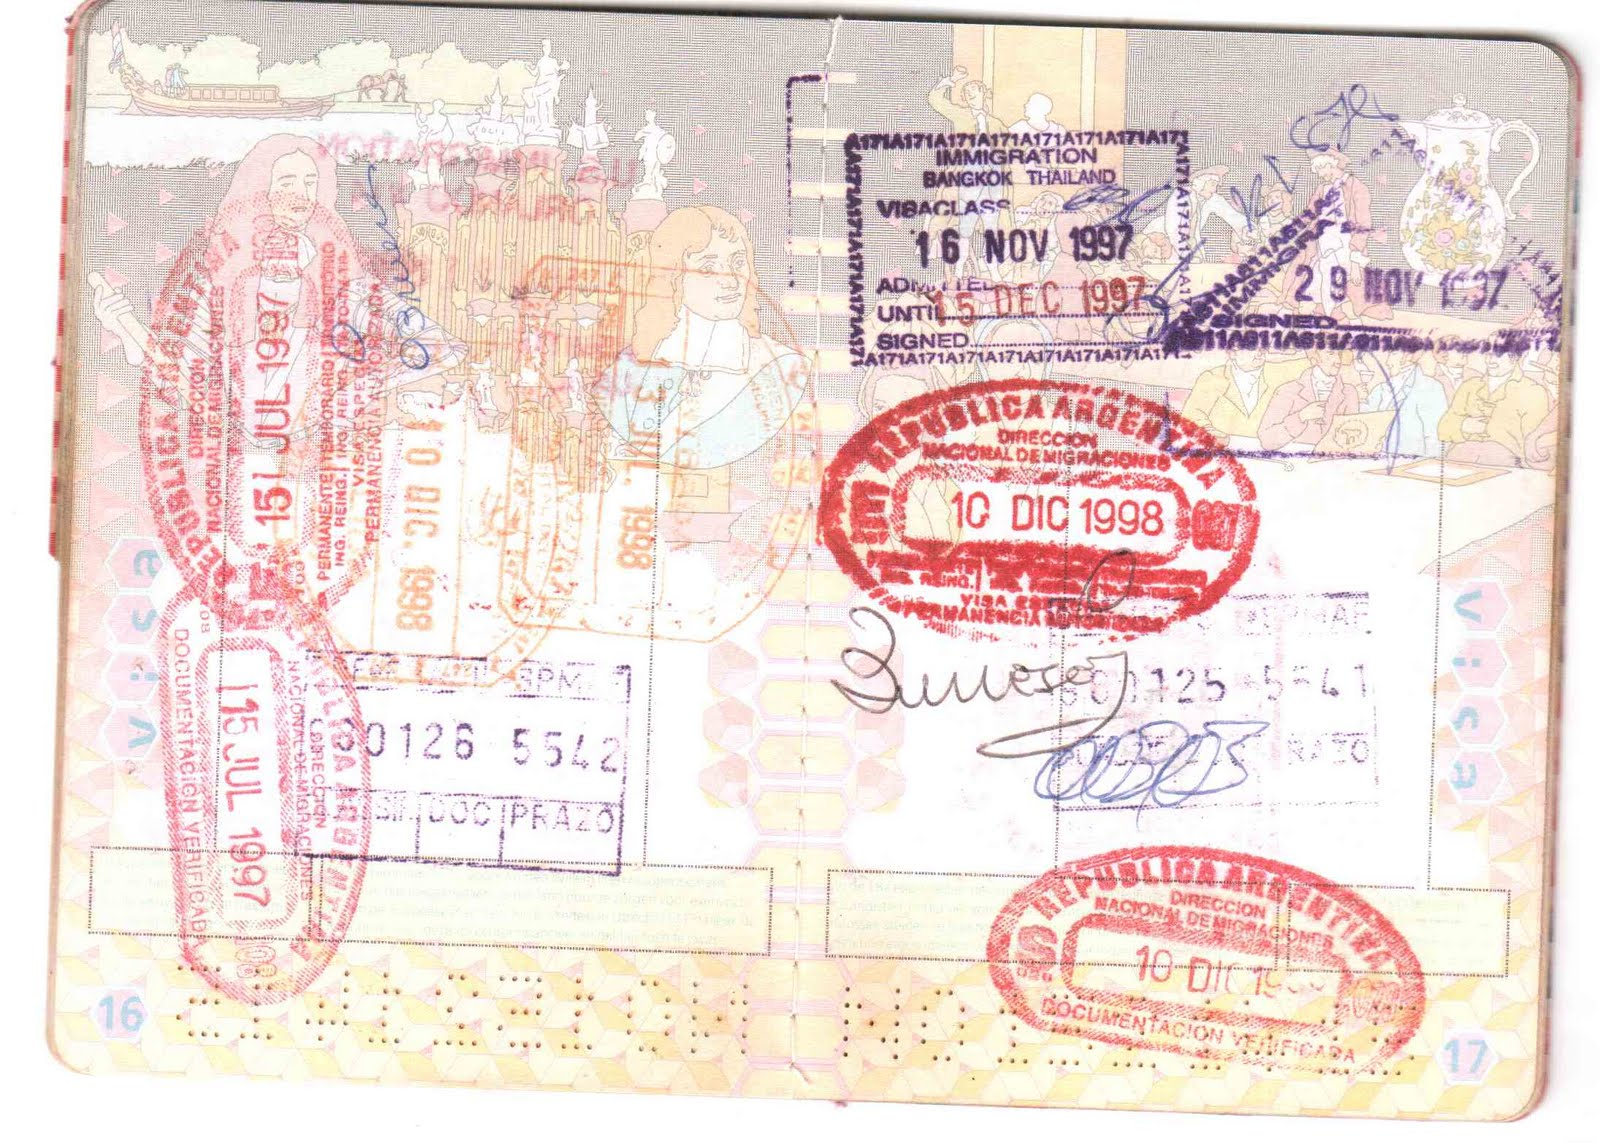 US passport - background pictures